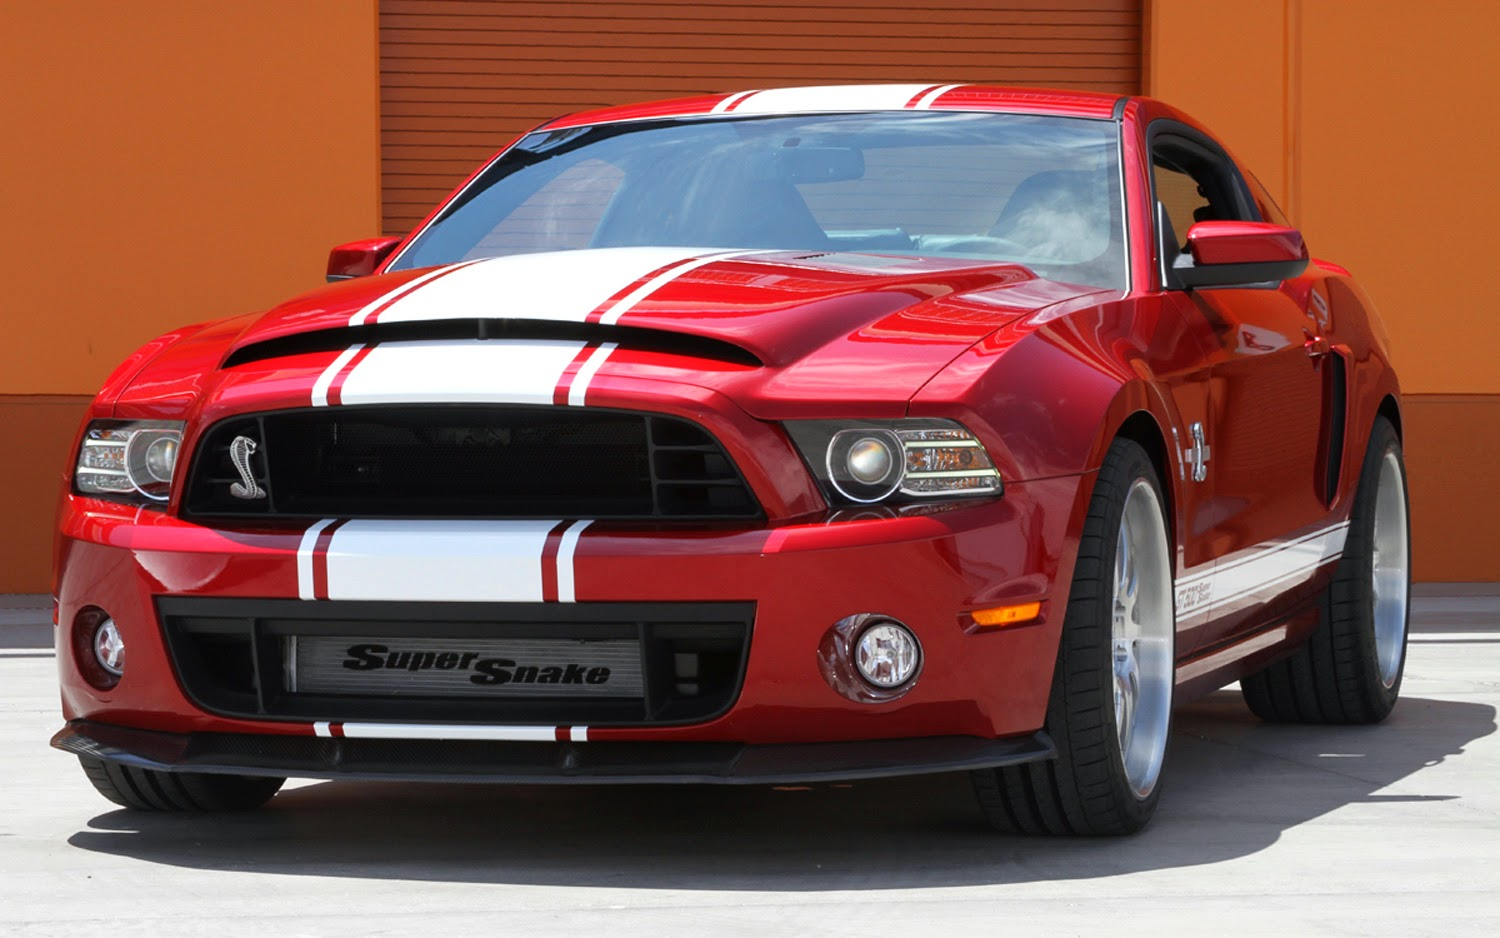 Shelby F150 For Sale >> New Car Love: 2014 Ford Shelby GT500